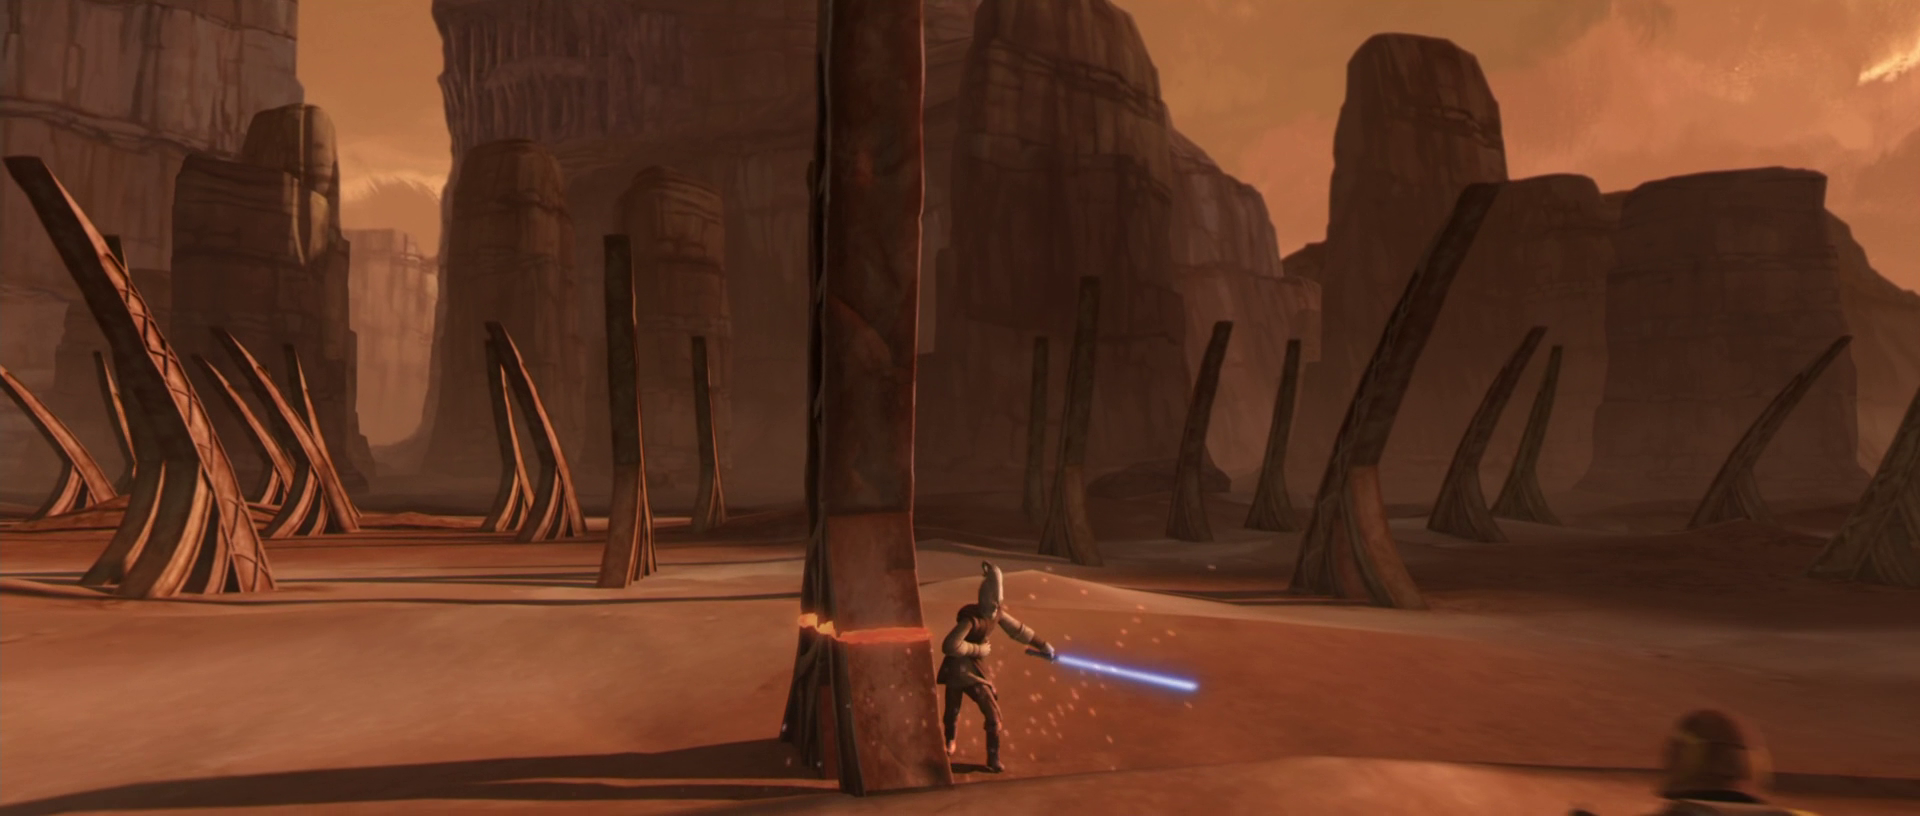 File:Caltrop field.png - Wookieepedia, the Star Wars Wiki